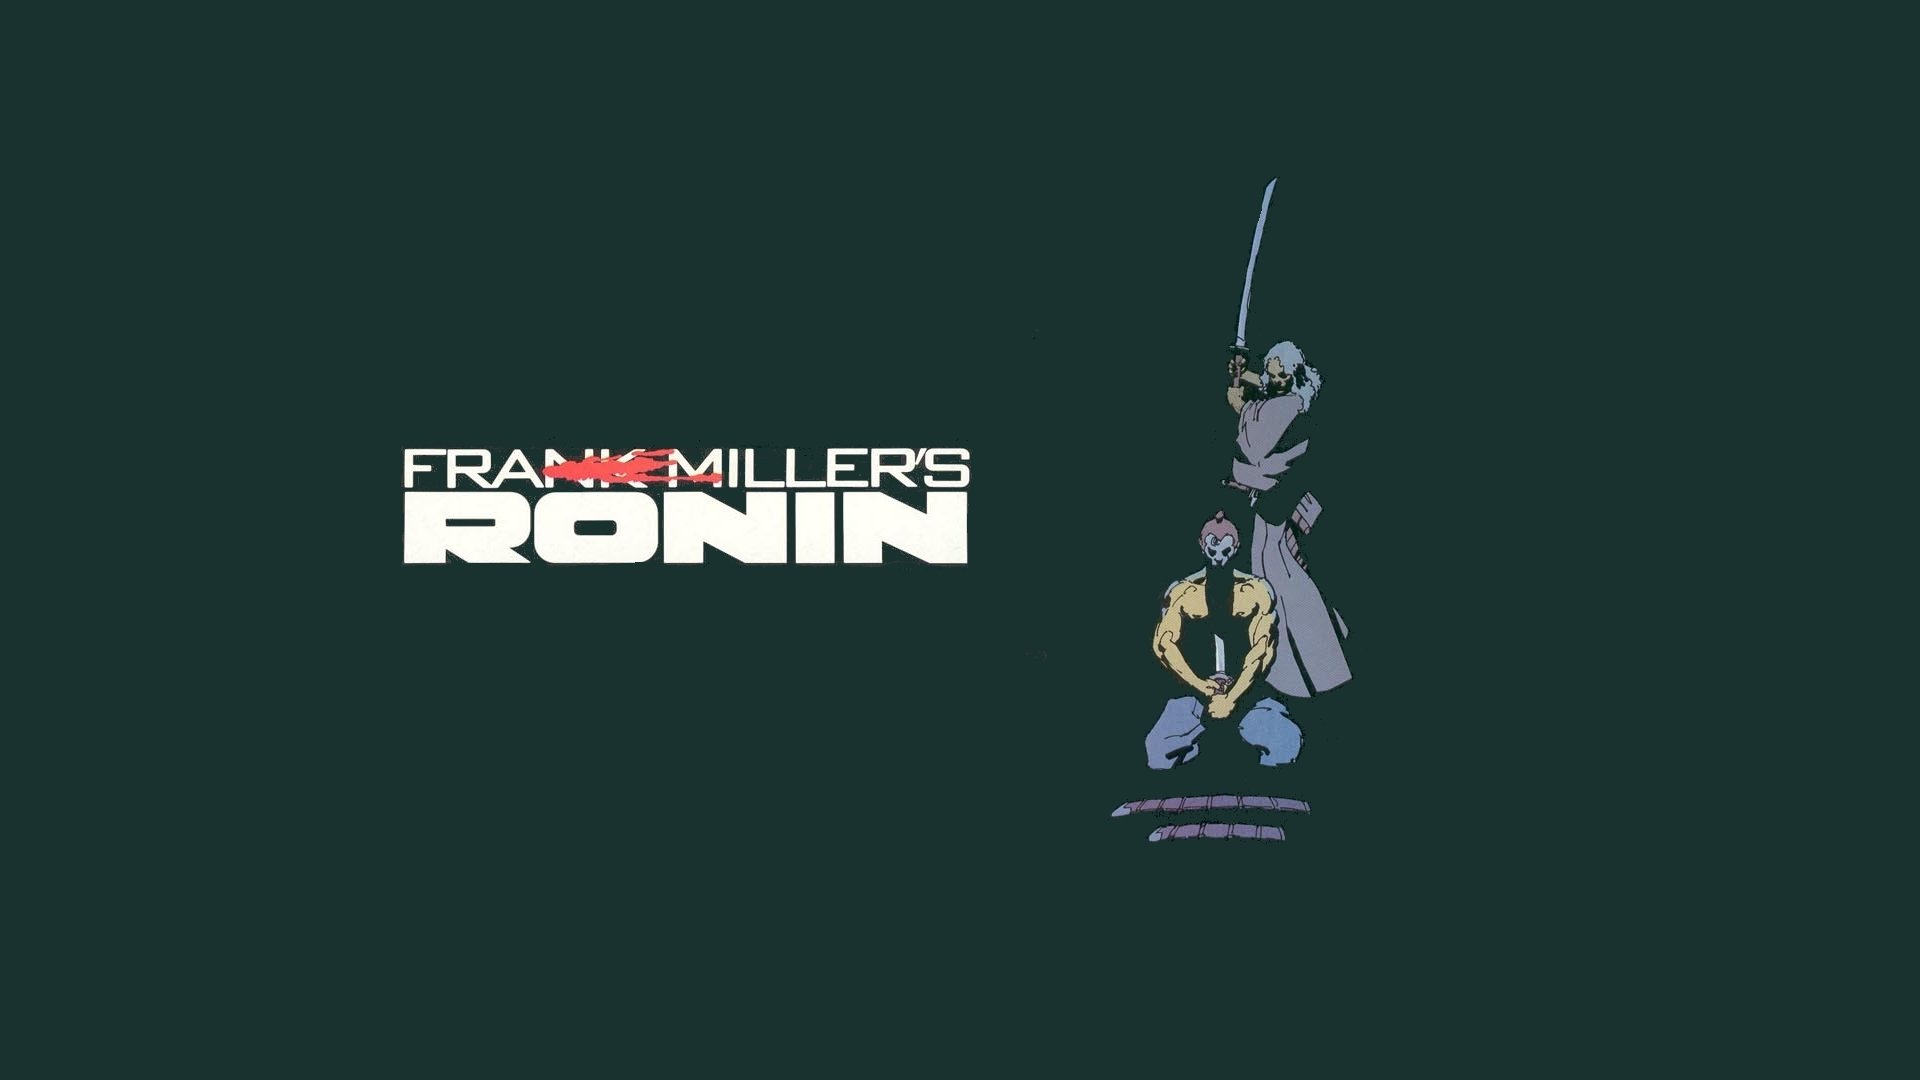 Great Wallpaper Marvel Ronin - thumb-1920-480118  2018_951126.jpg